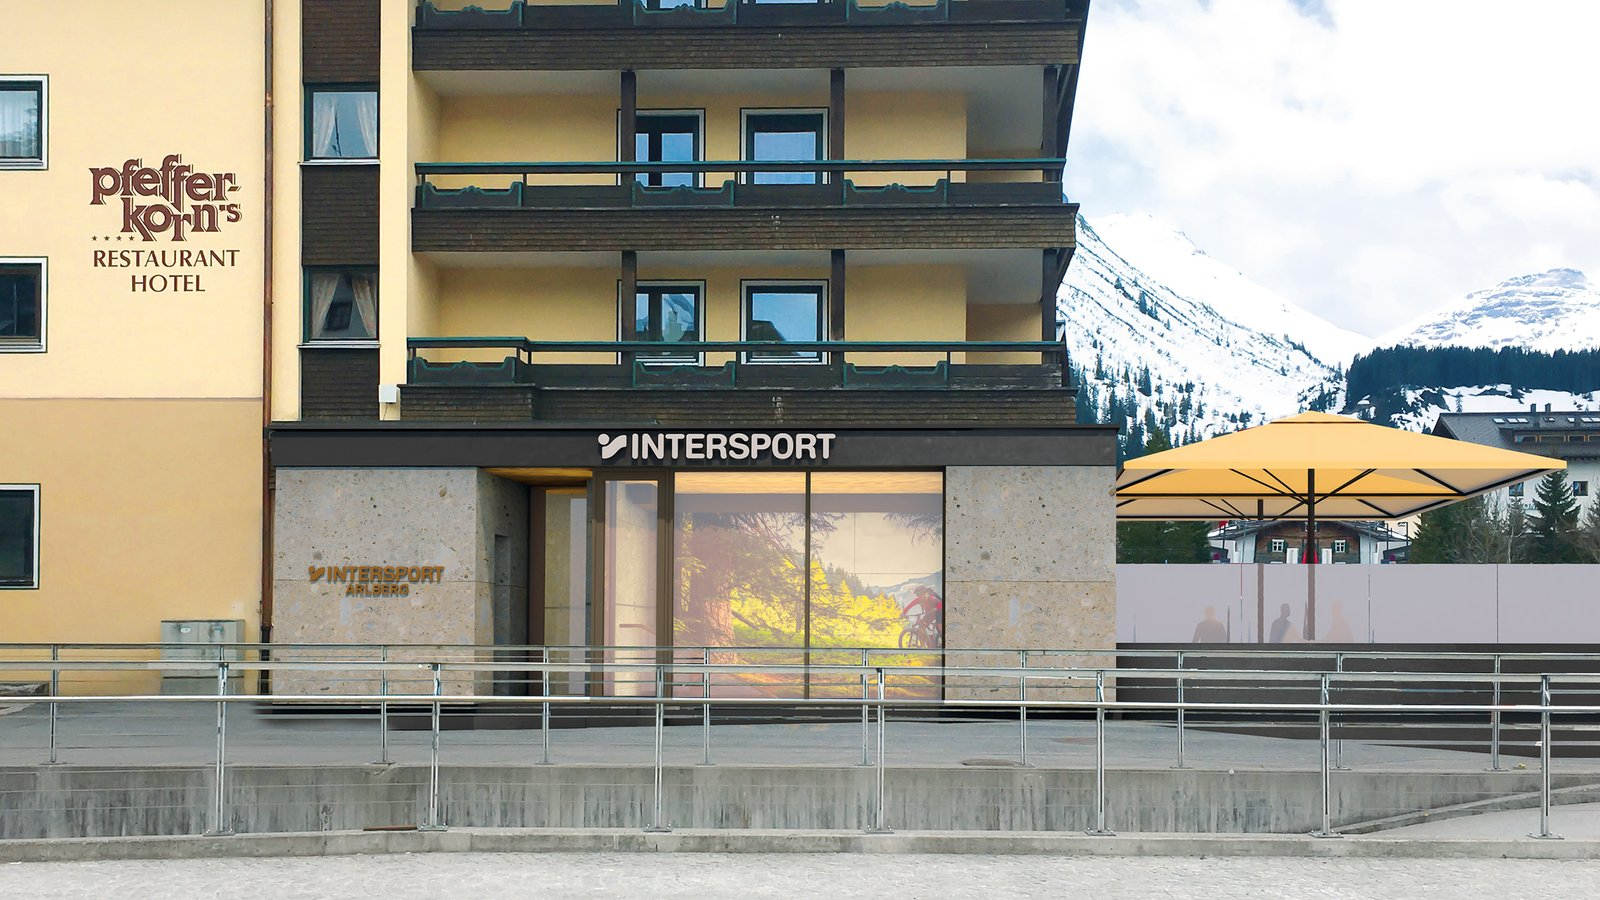 Stop by! Visit our new Intersport Arlberg rental shop at the Rüfikopfbahn in Lech